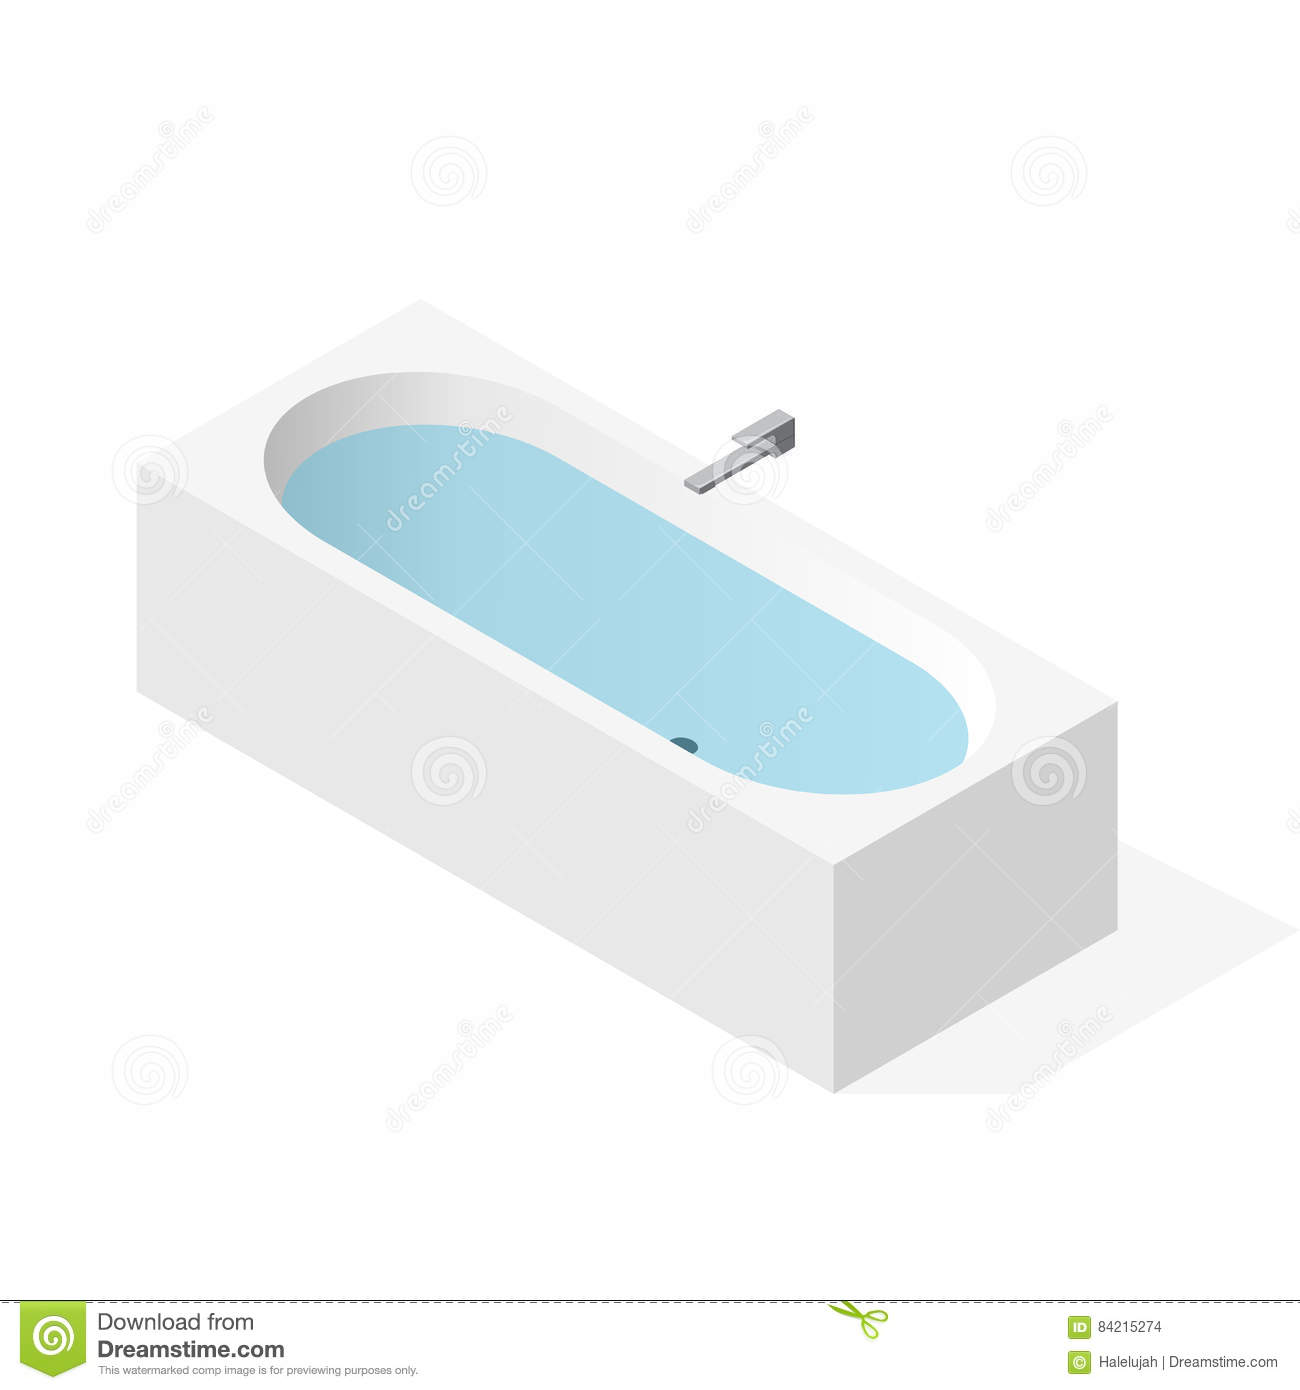 Modern Bathtub Filled With Water. Vector Bath Tub